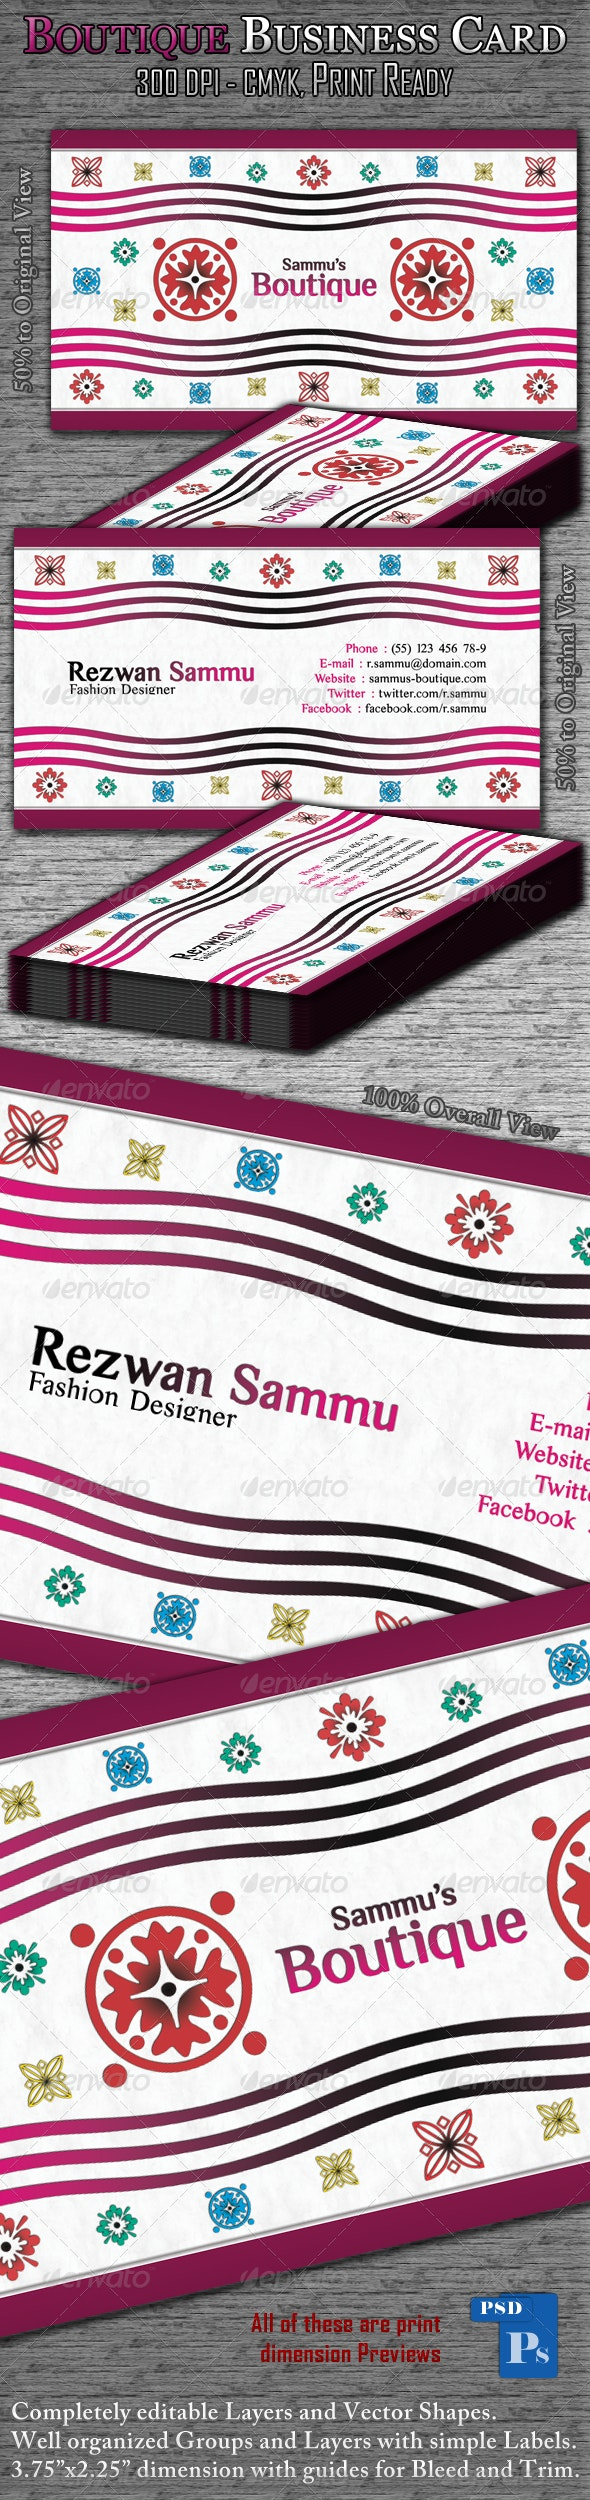 Boutique Business Card - Creative Business Cards